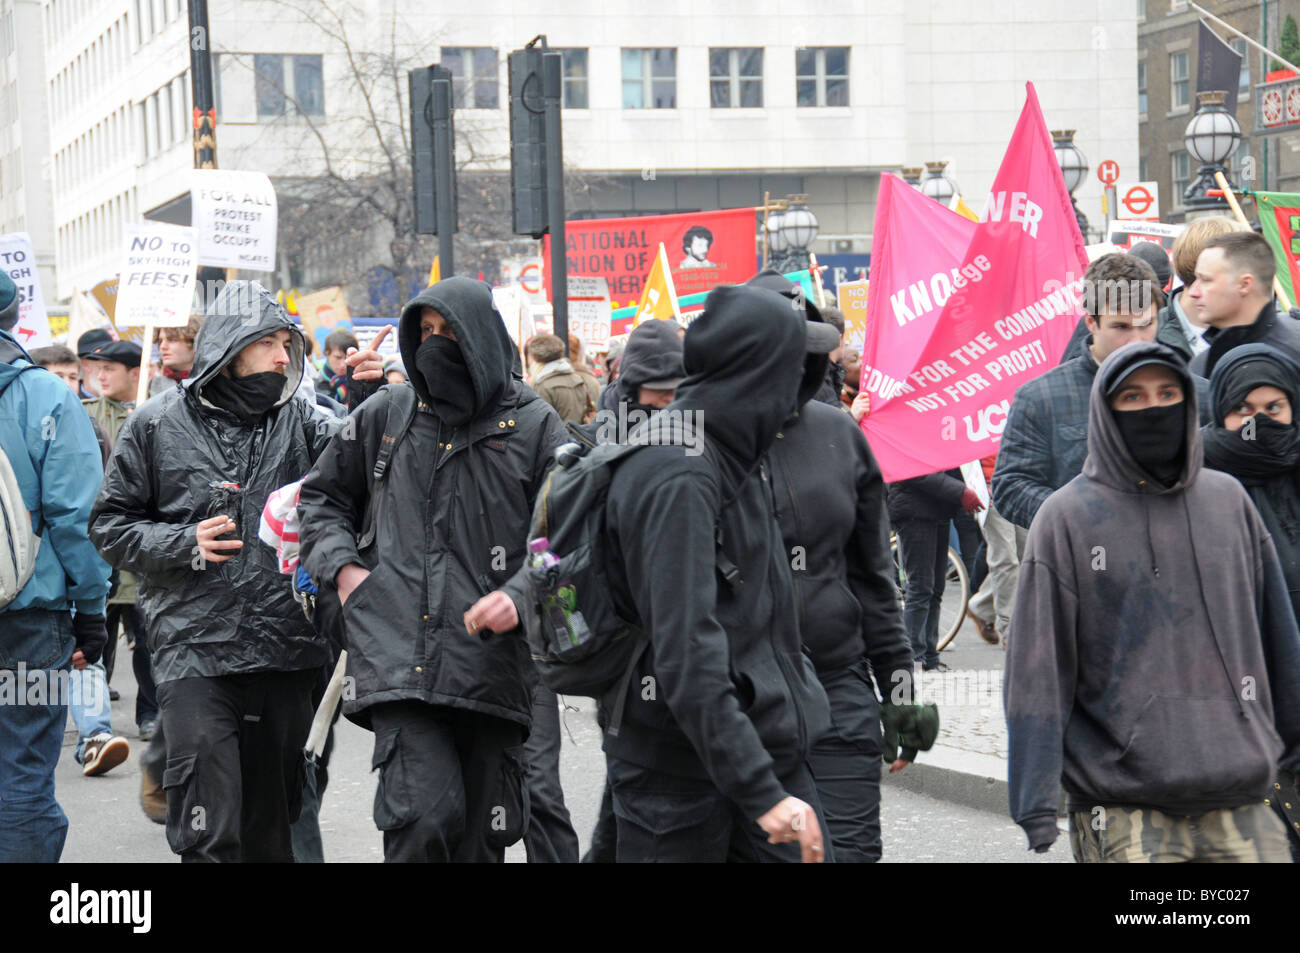 NUS TUC Balaclava and masked protesters Student and Union protest against tuition fees and job losses - Stock Image